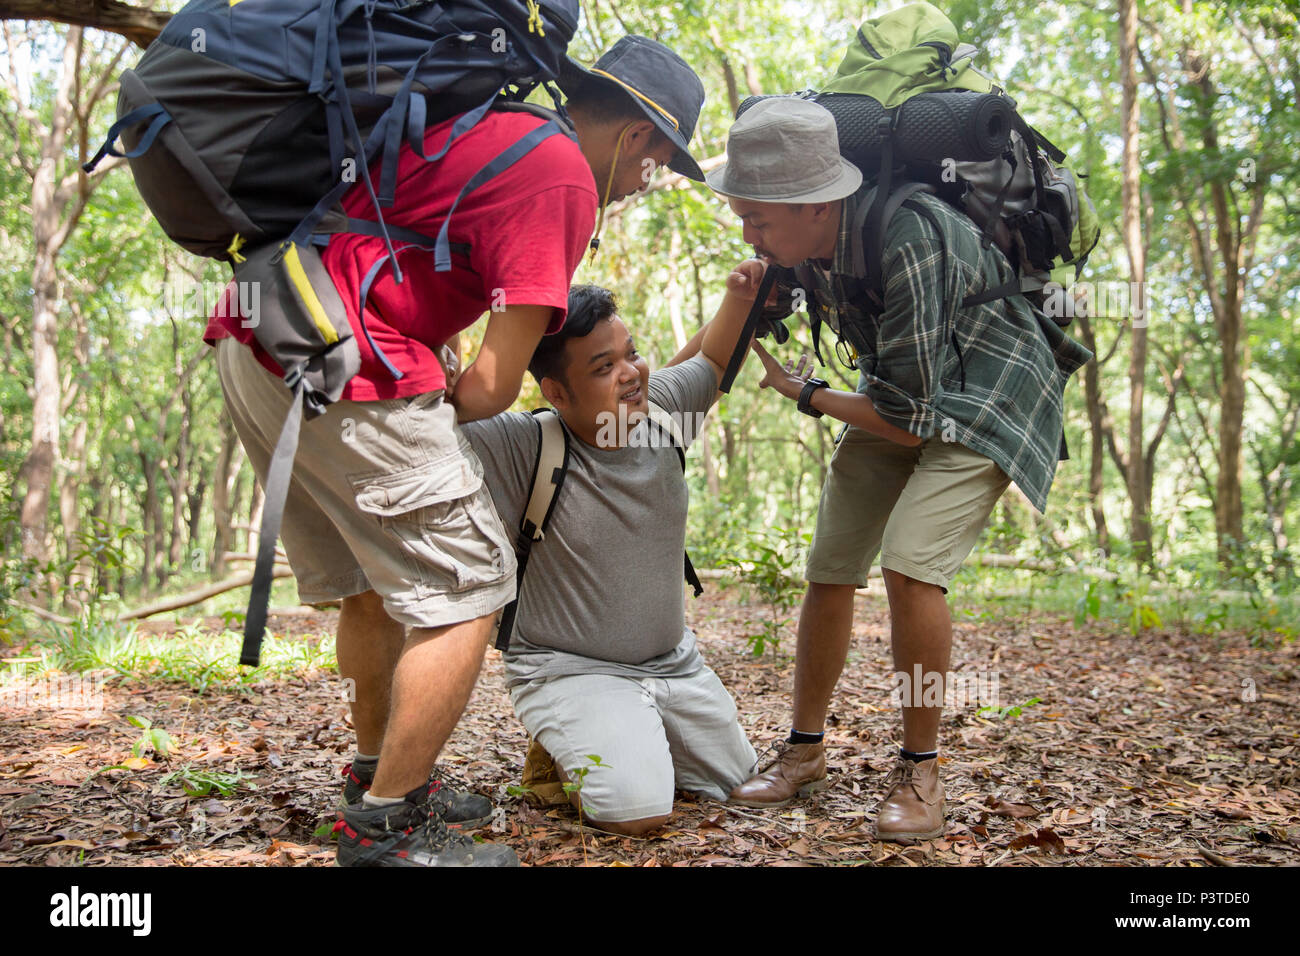 man need help to get up while hiking - Stock Image